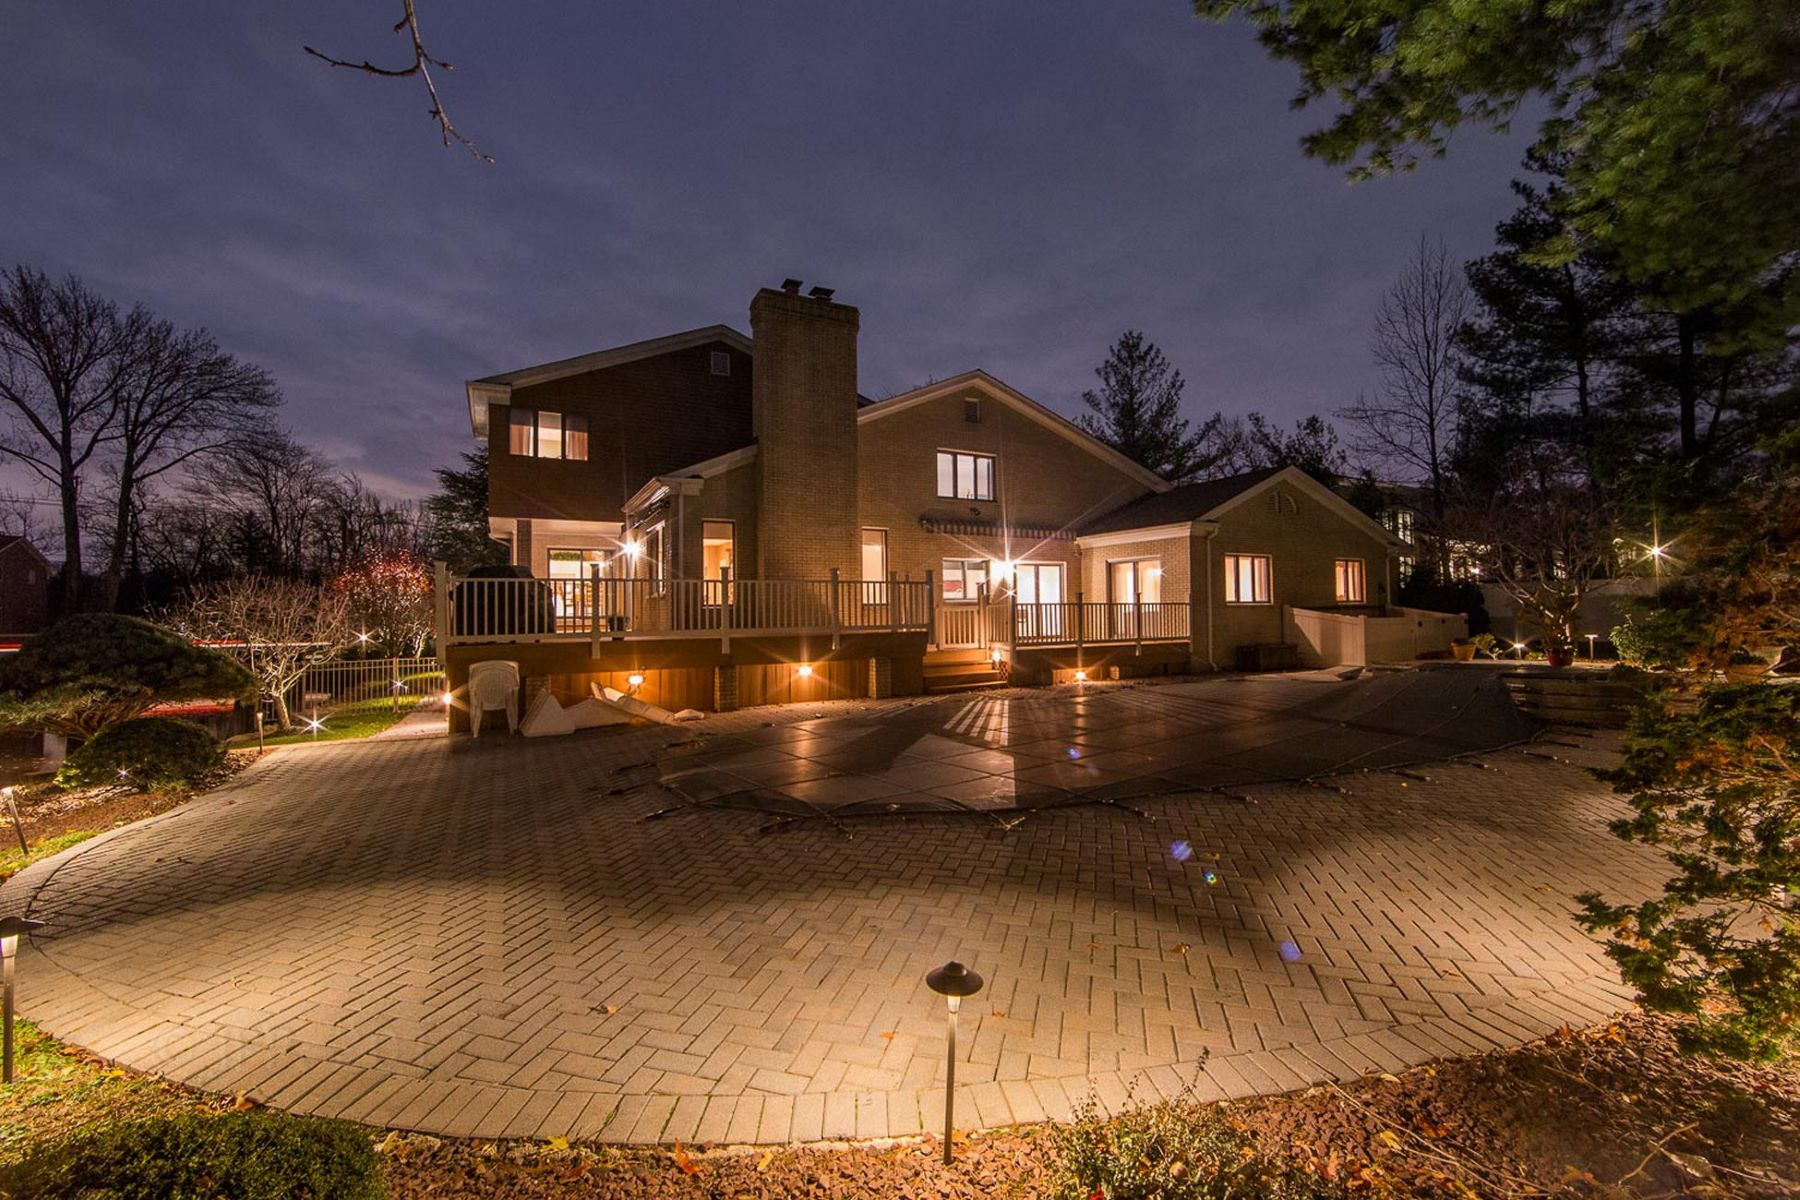 Single Family Home for Sale at Custom Built Colonial 185 Pershing Rd. Englewood Cliffs, New Jersey, 07632 United States